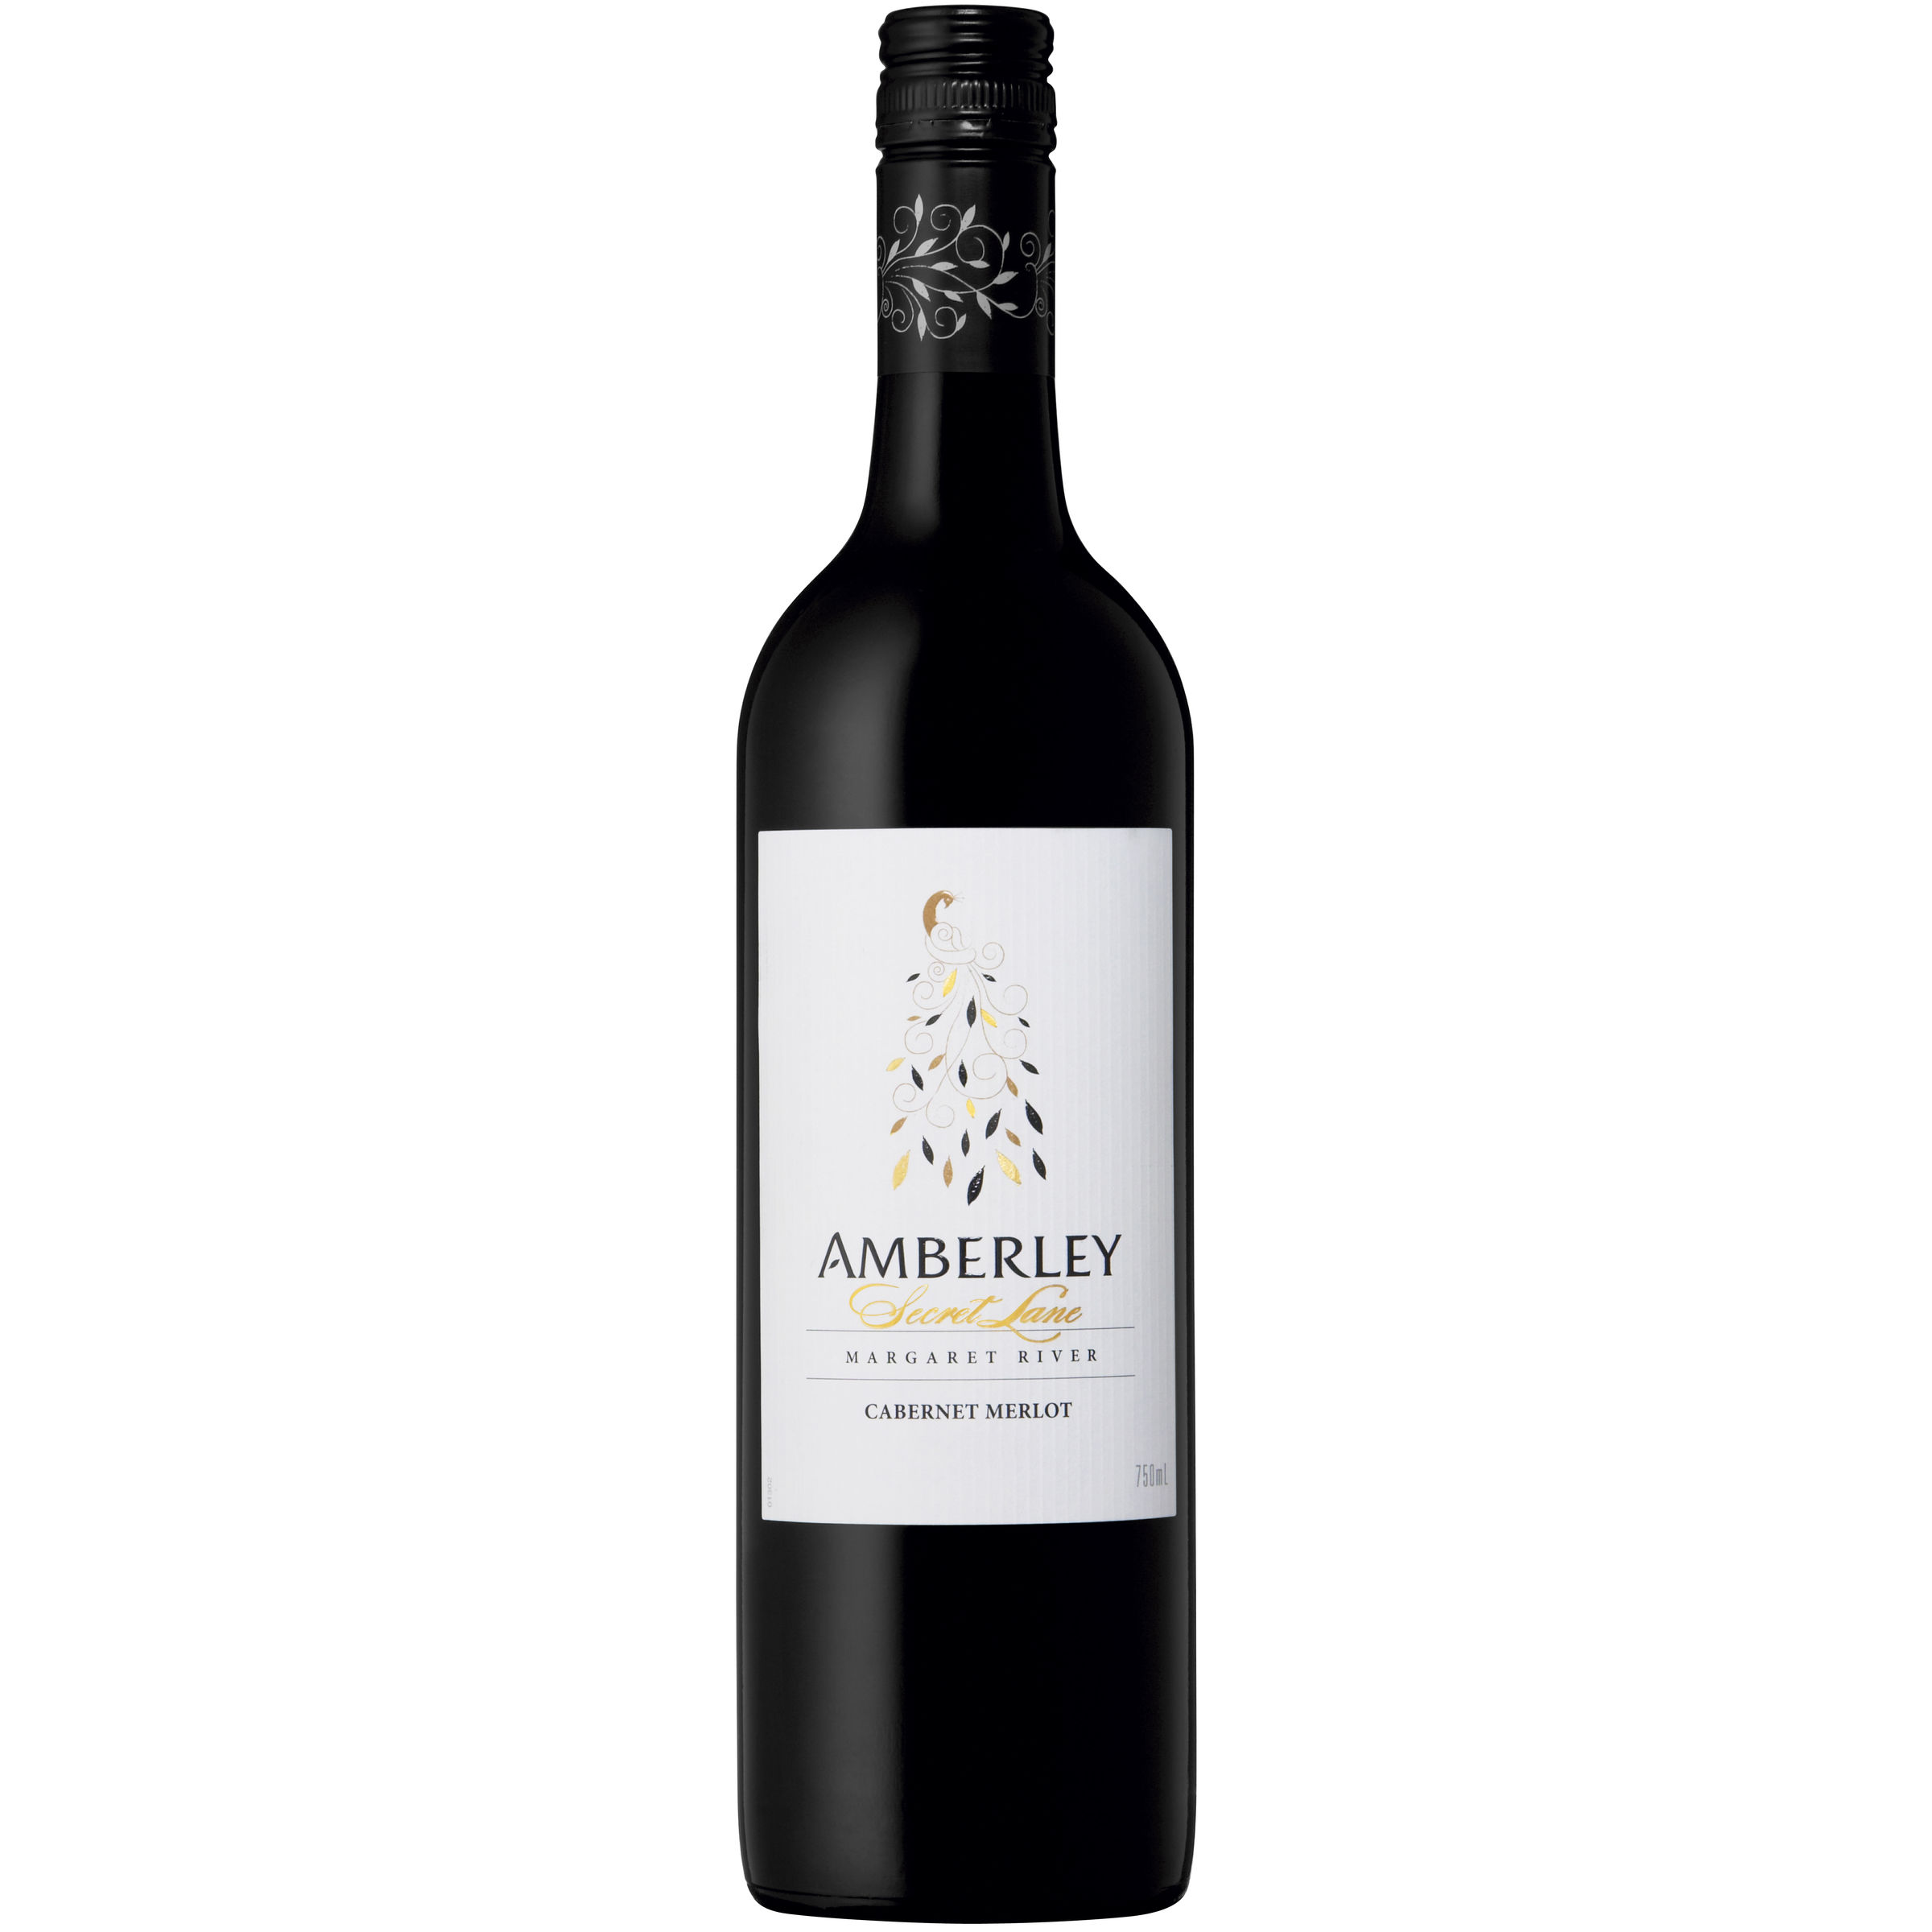 AMBERLEY SECRET LANE CABERNET MERLOT